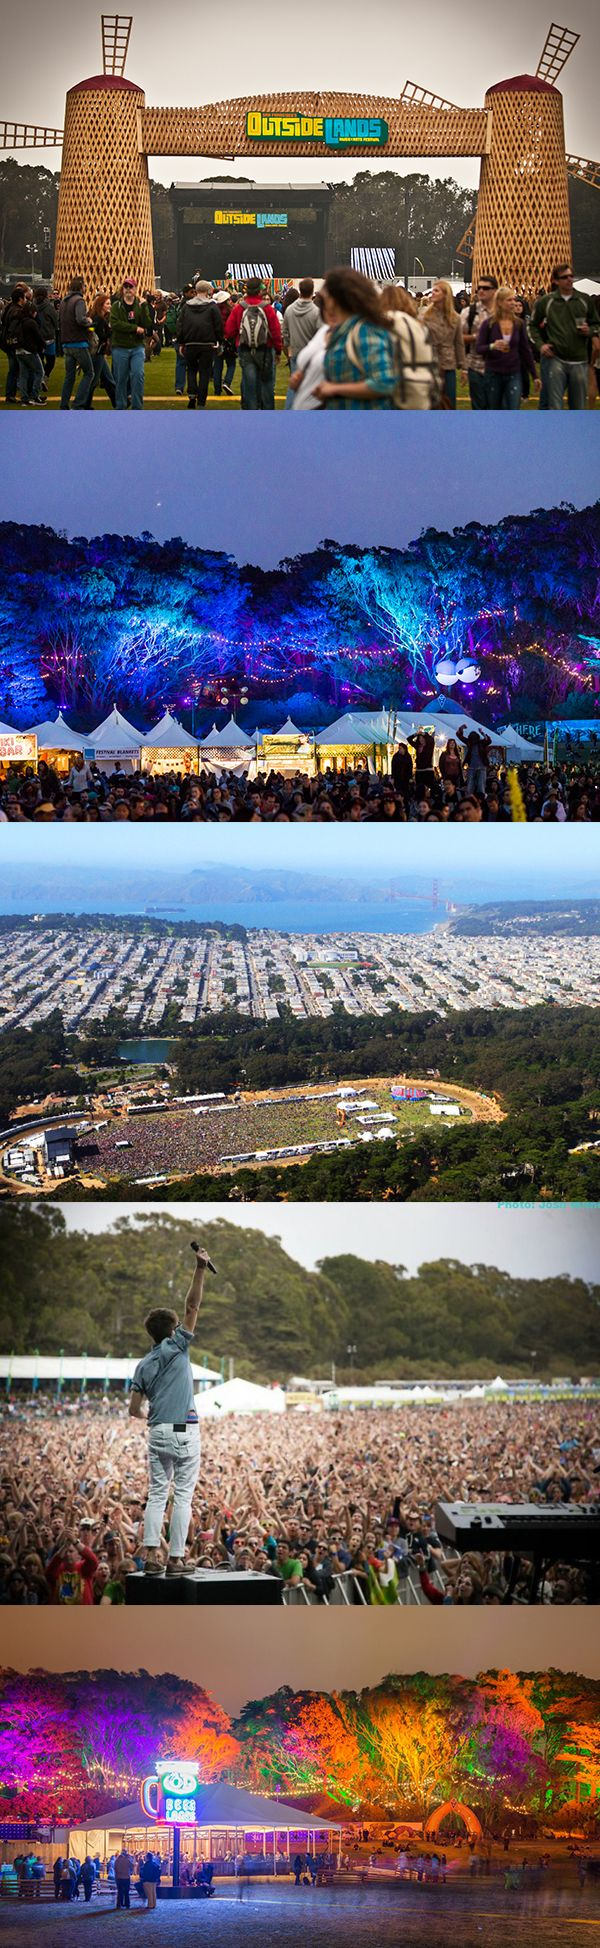 Outside Lands Music Festival - one of the most underrated music festivals in the US!